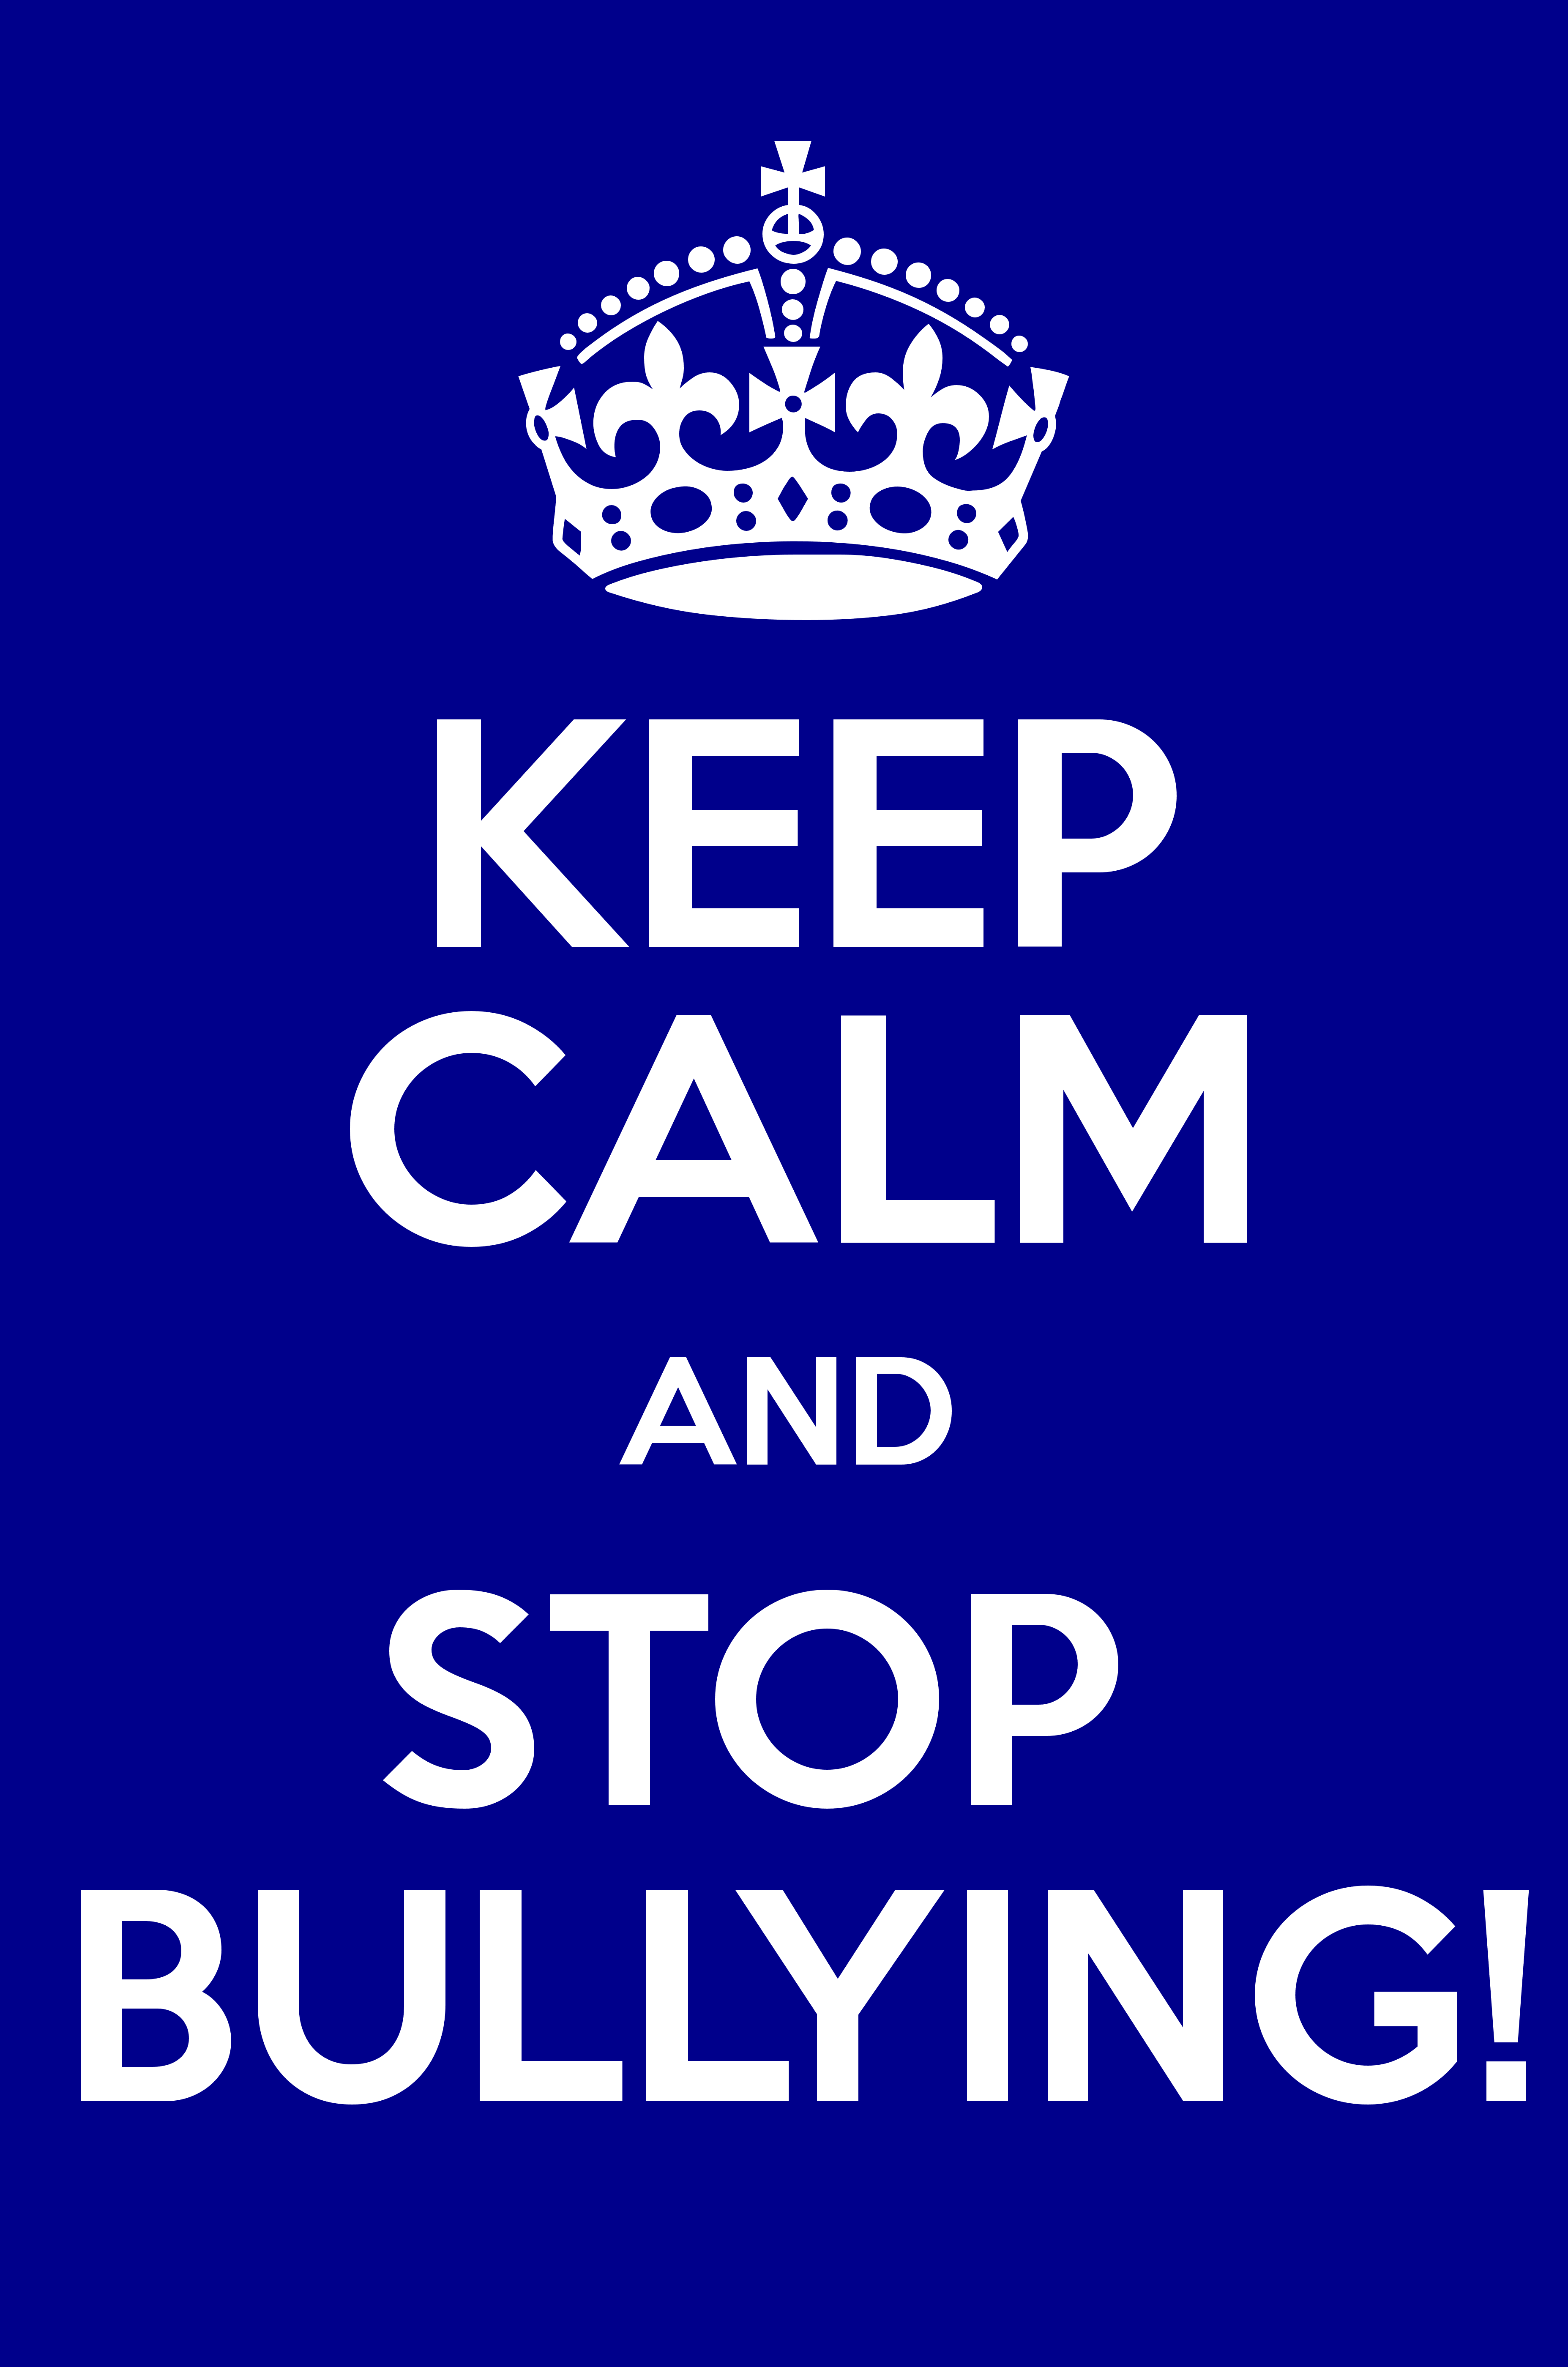 KEEP CALM AND STOP BULLYING! - Keep Calm and Posters ...